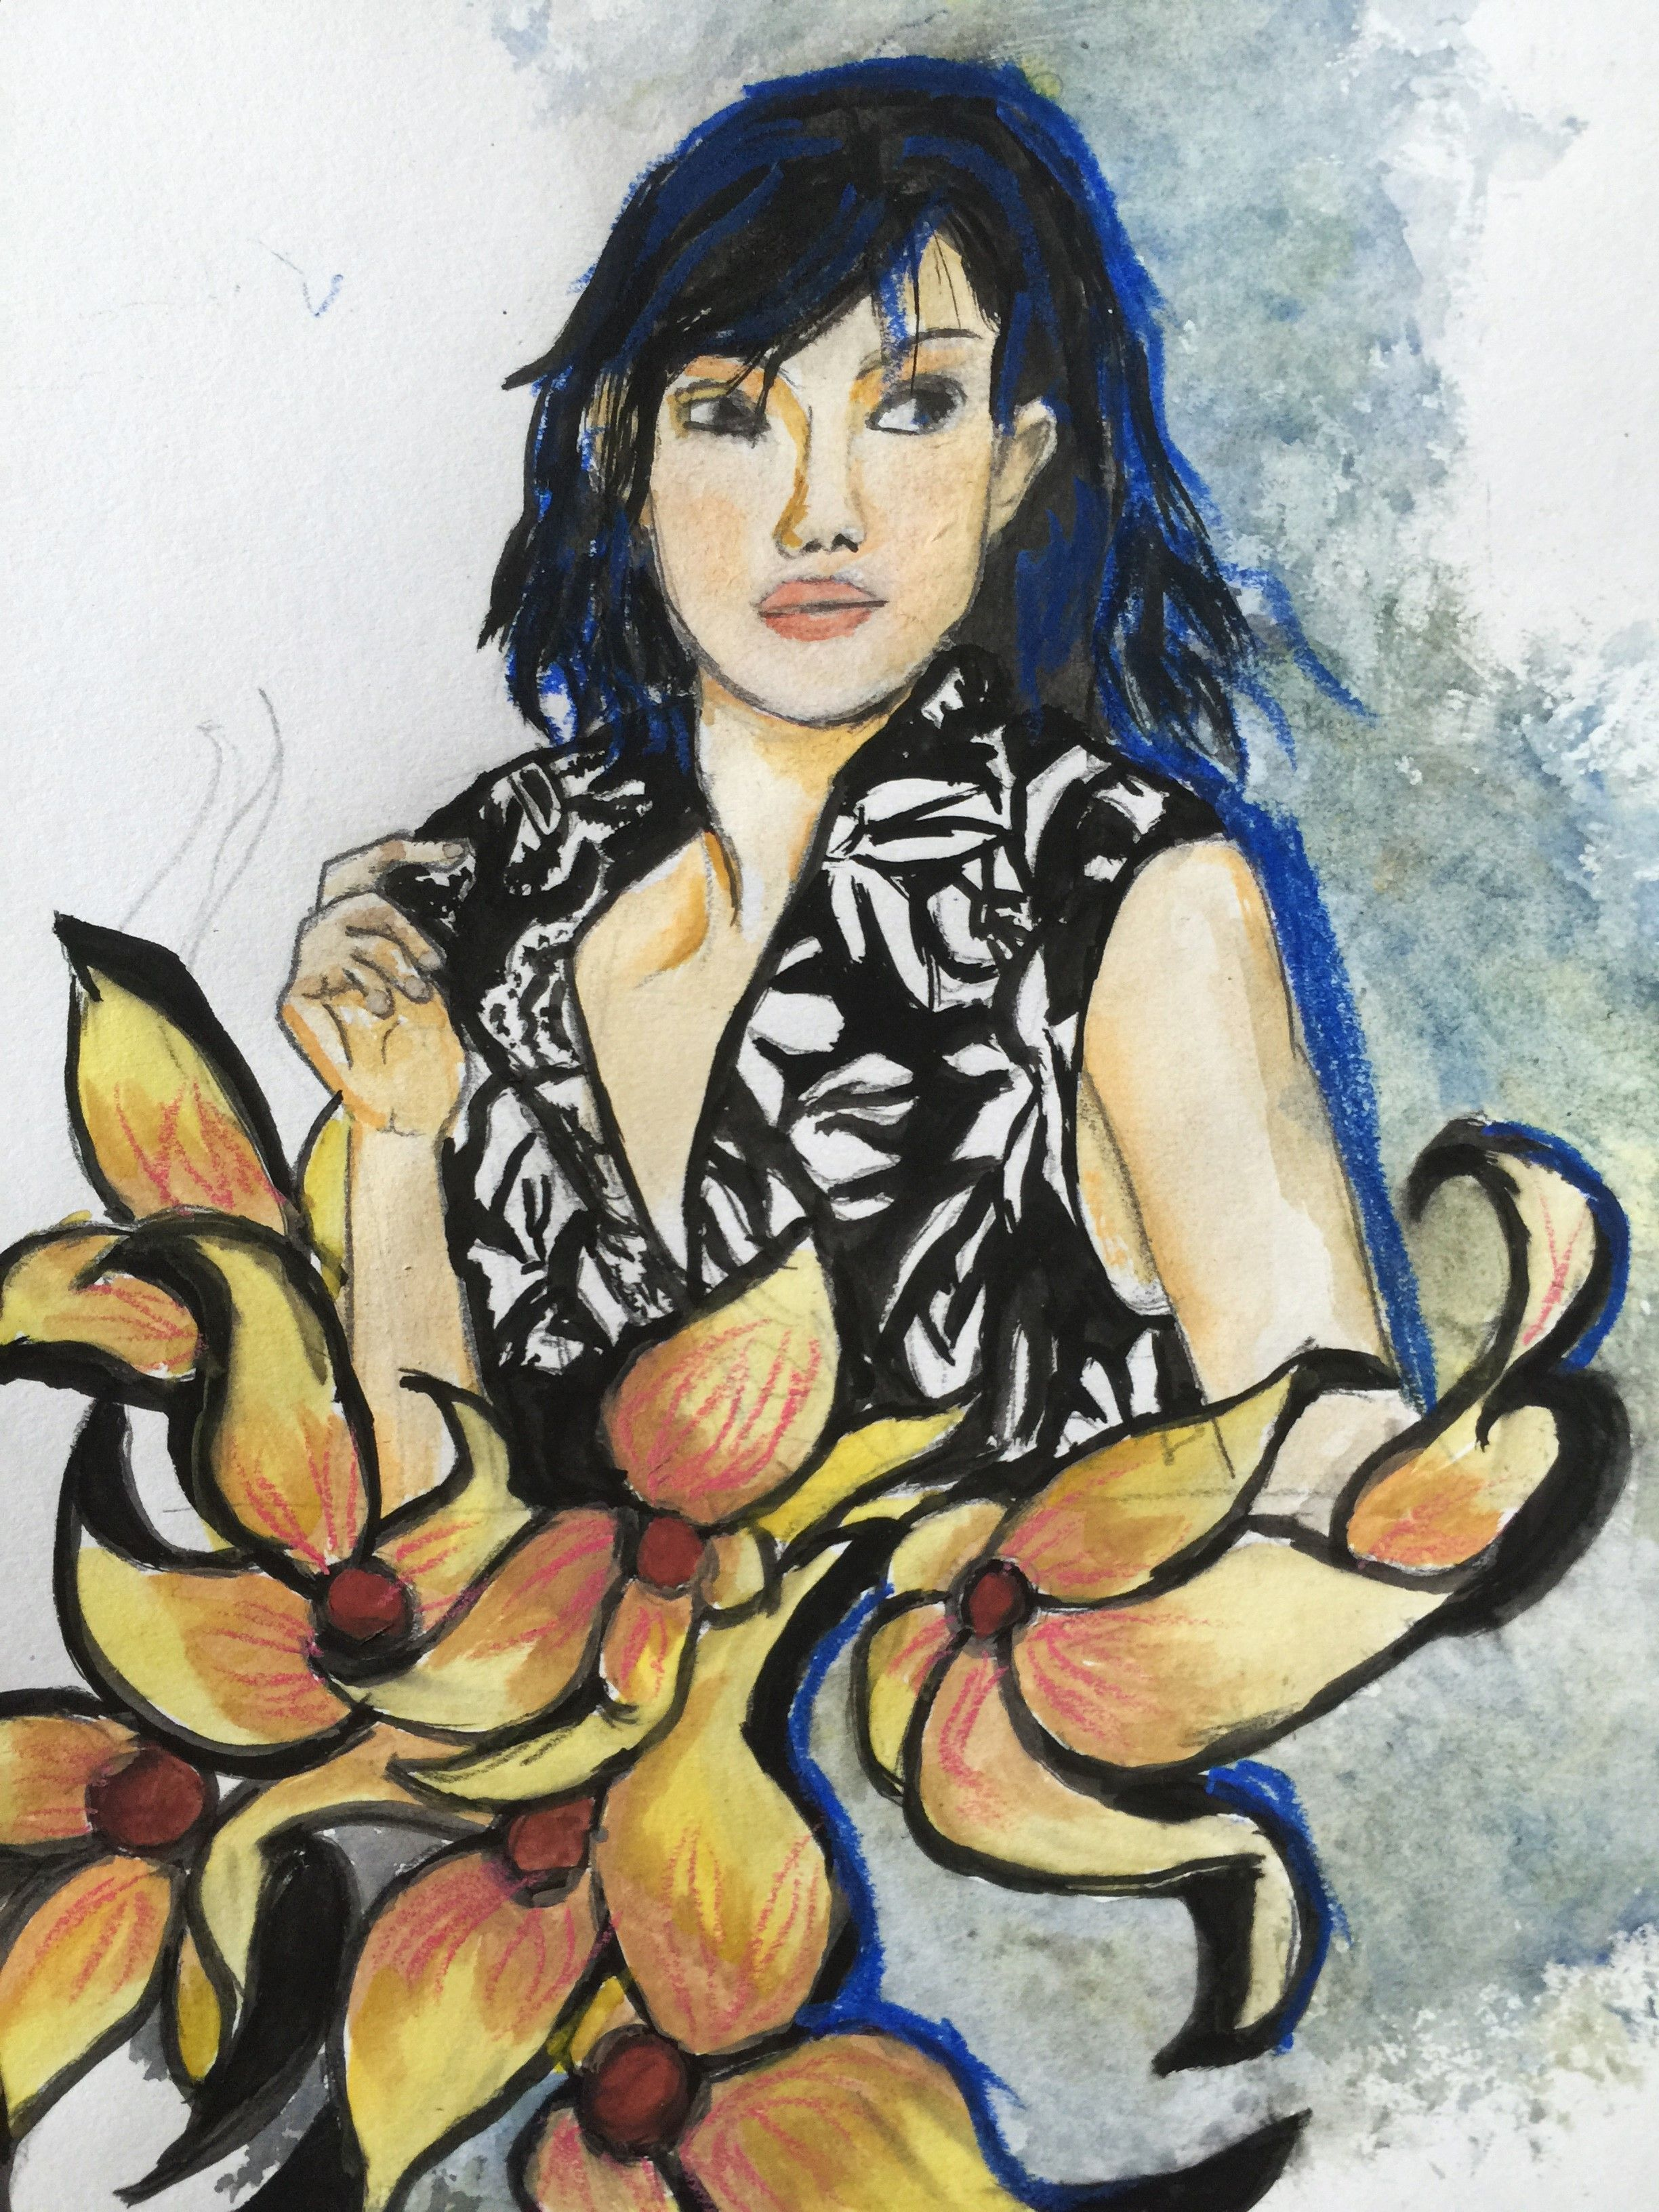 floral fashion inspried by magazine model - watercolour and oil pastel